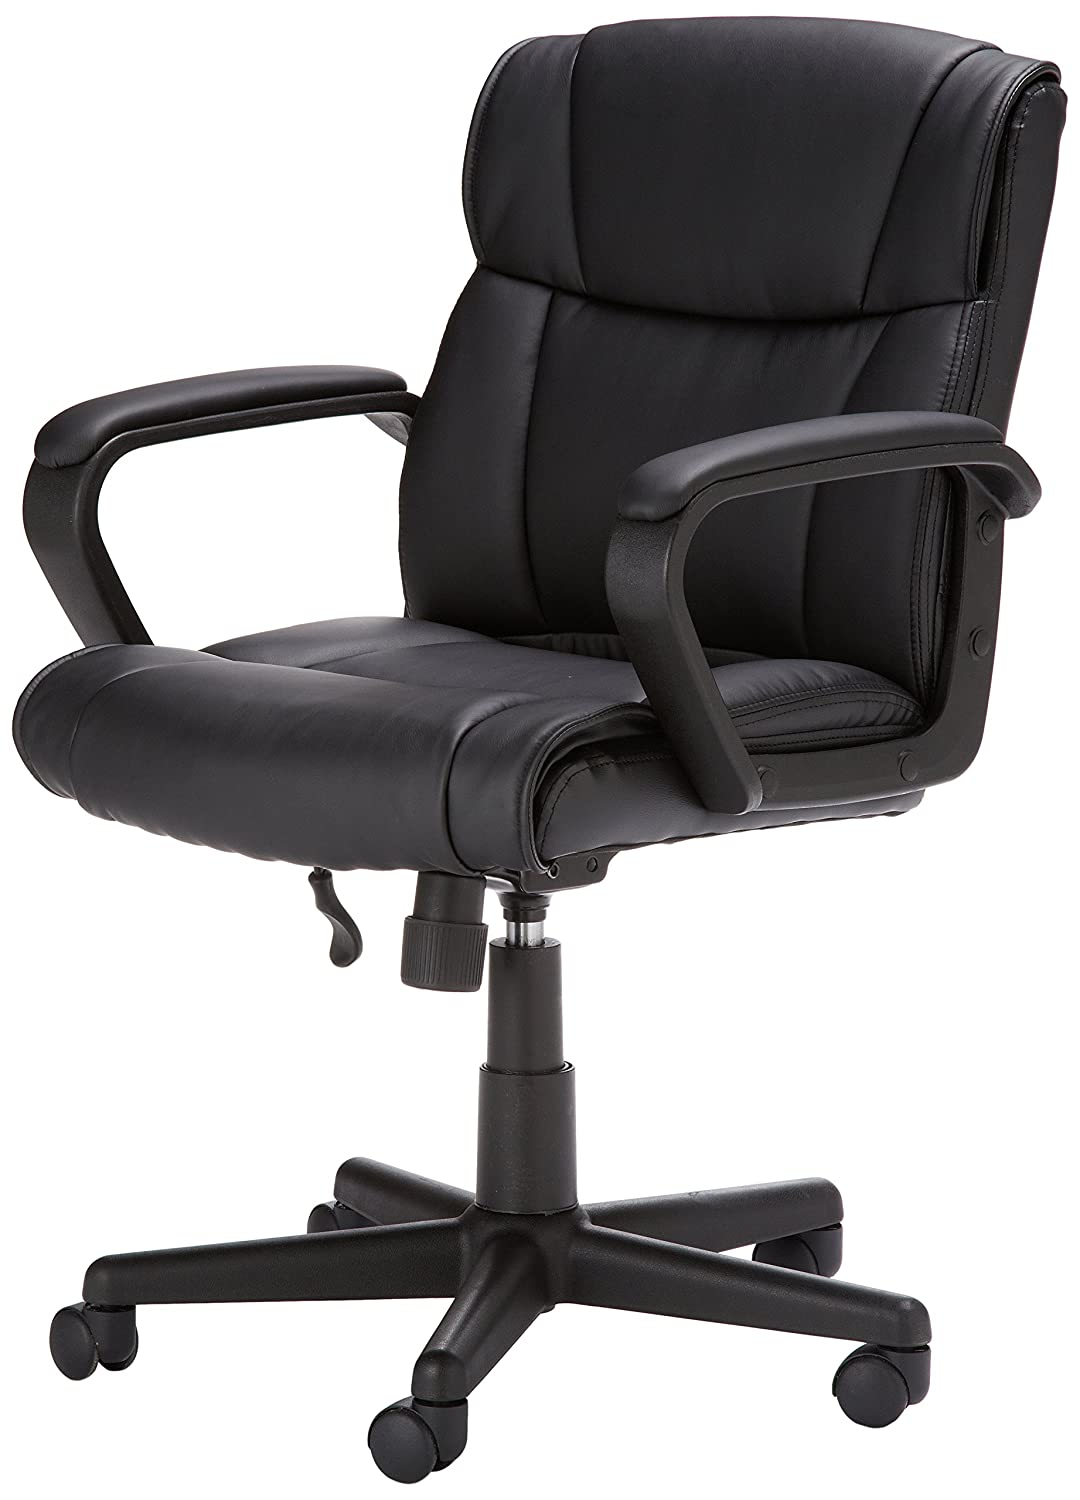 Office Chairs Best Orthopedic Office Chairs Oprthopedic Office Chair